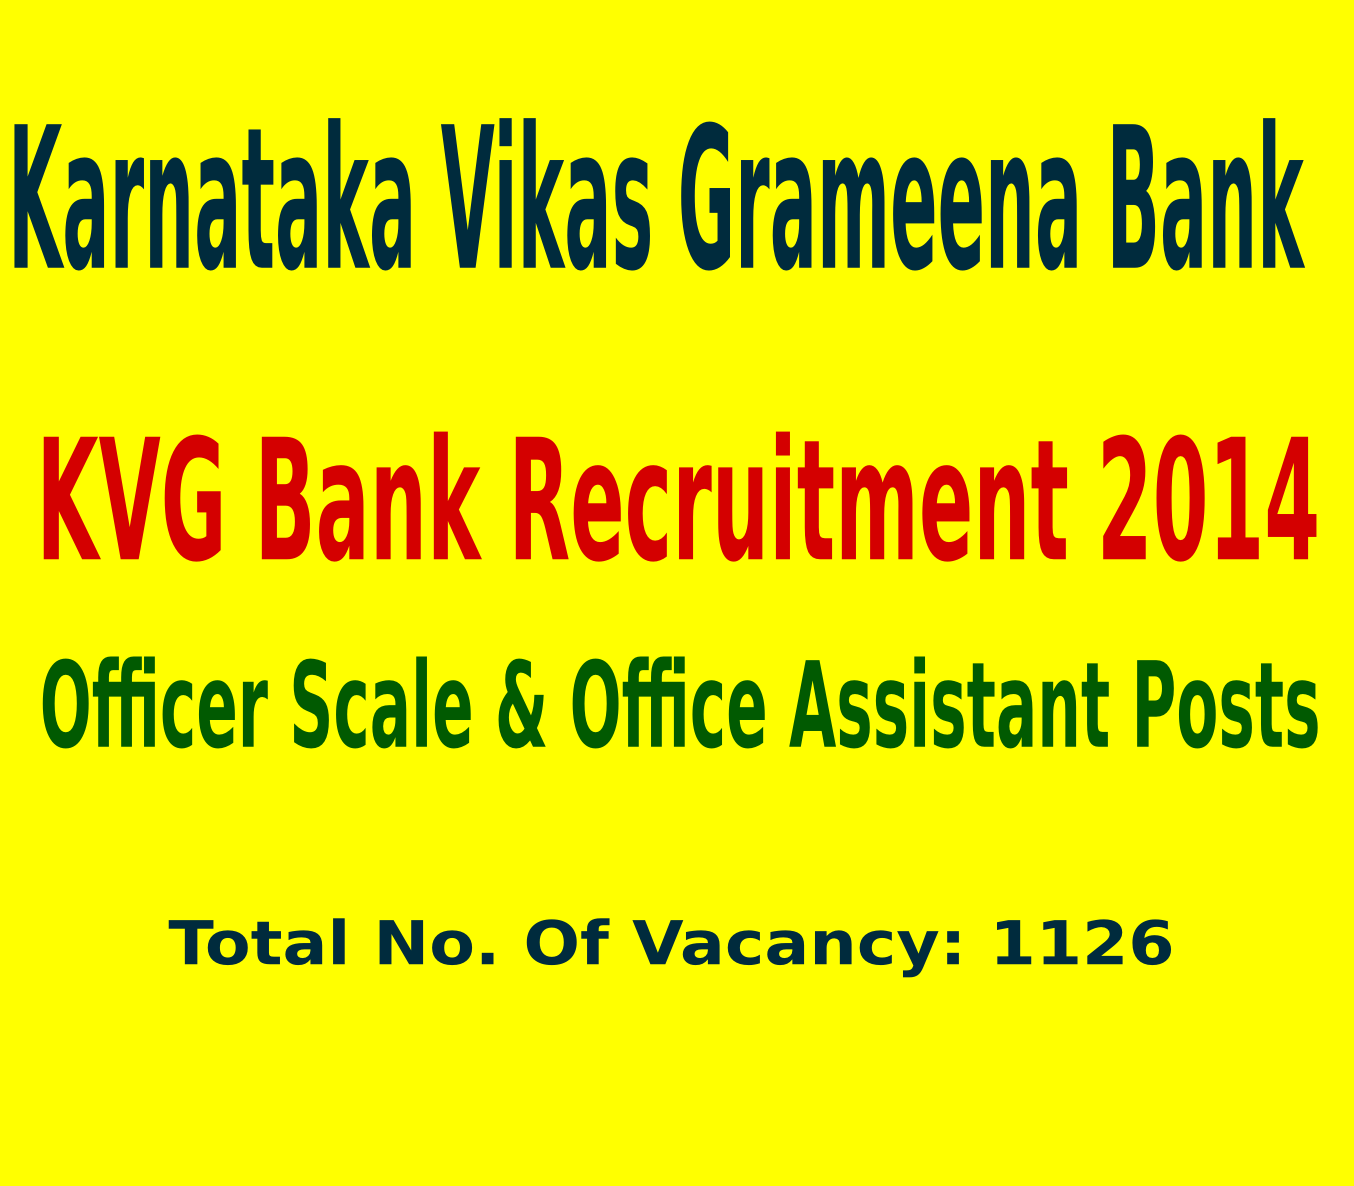 KVG Bank Recruitment 2014 For 1126 Officer Scale & Office Assistant Posts